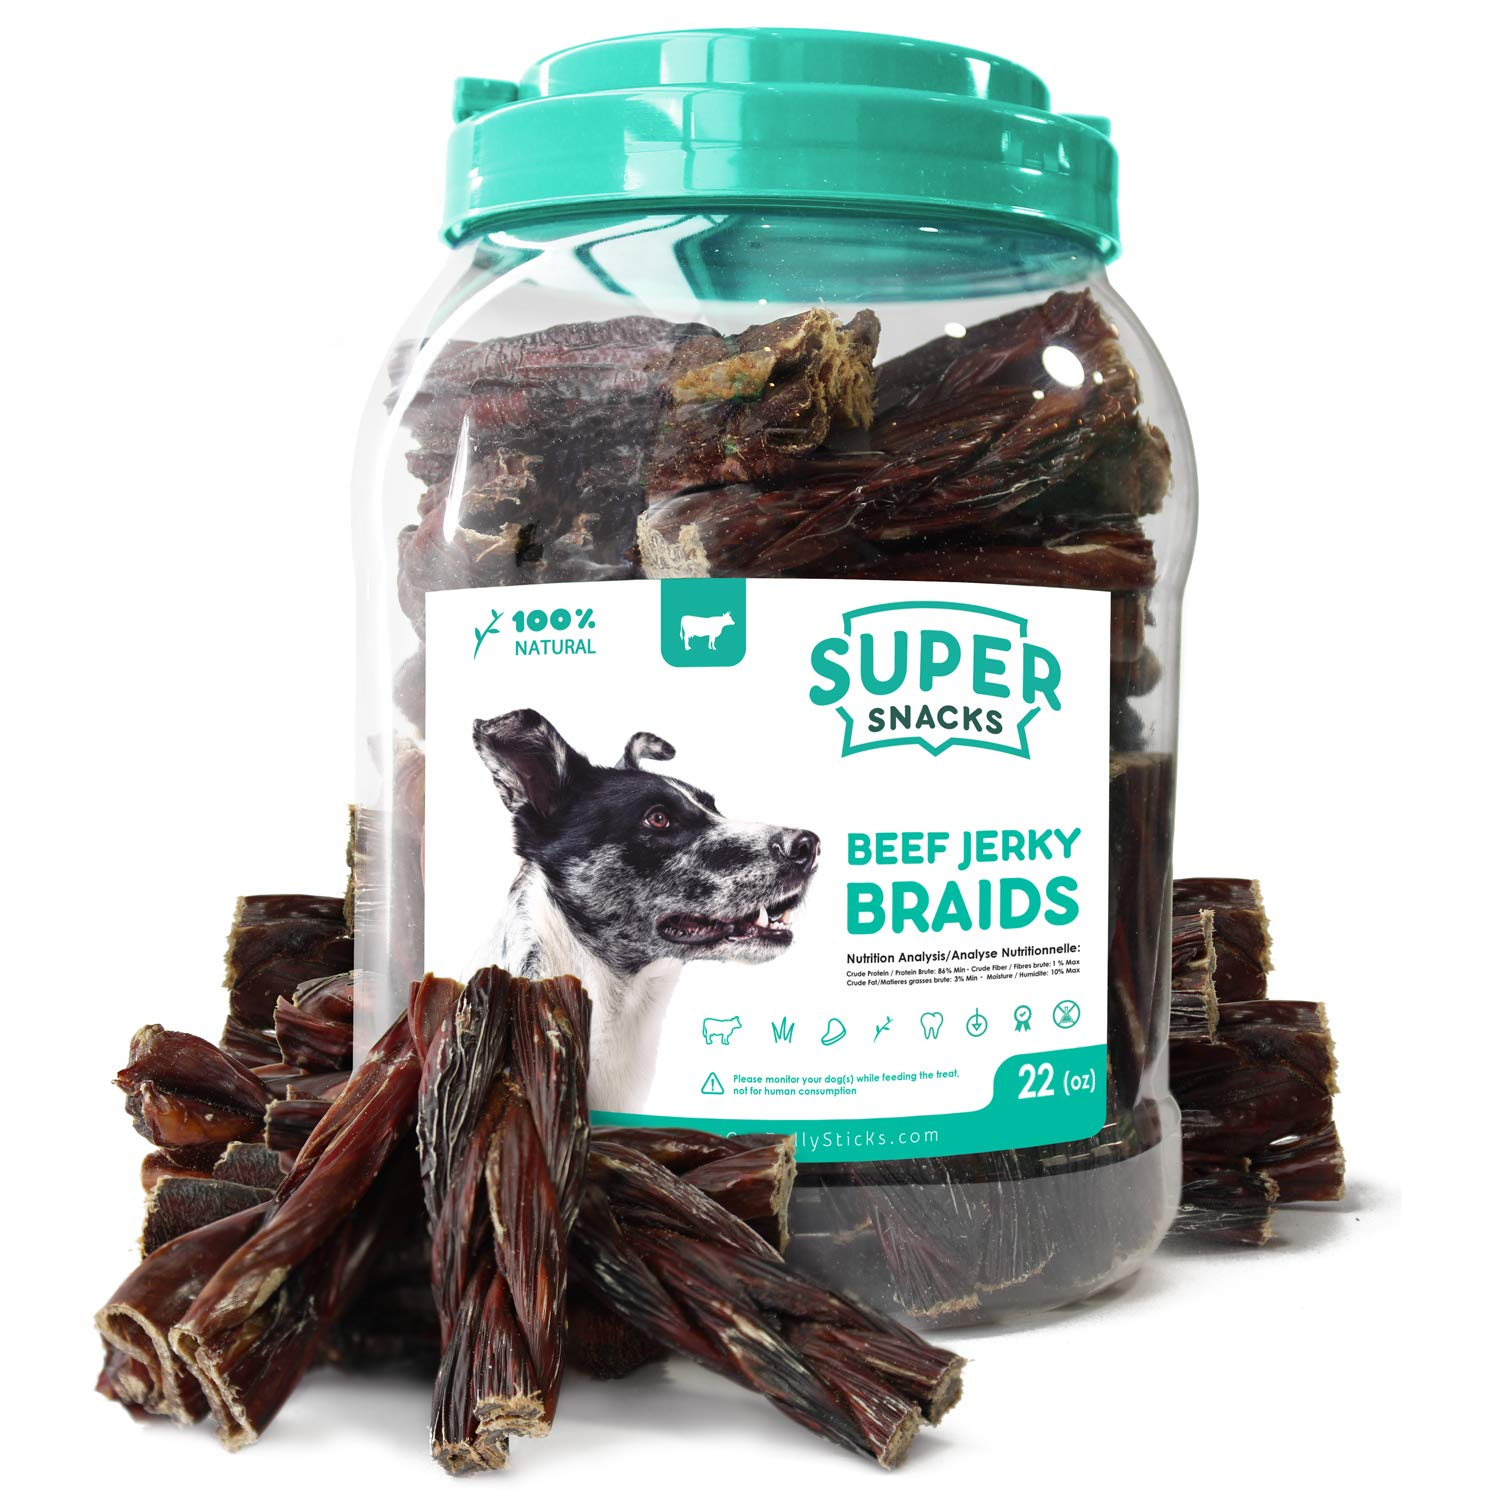 SUPER CAN BULLYSTICKS Premium Beef Jerky Chews for Dogs – 100 Natural Gullet Sticks and Strips – Free Range Grass Fed Sourced Beef Sticks